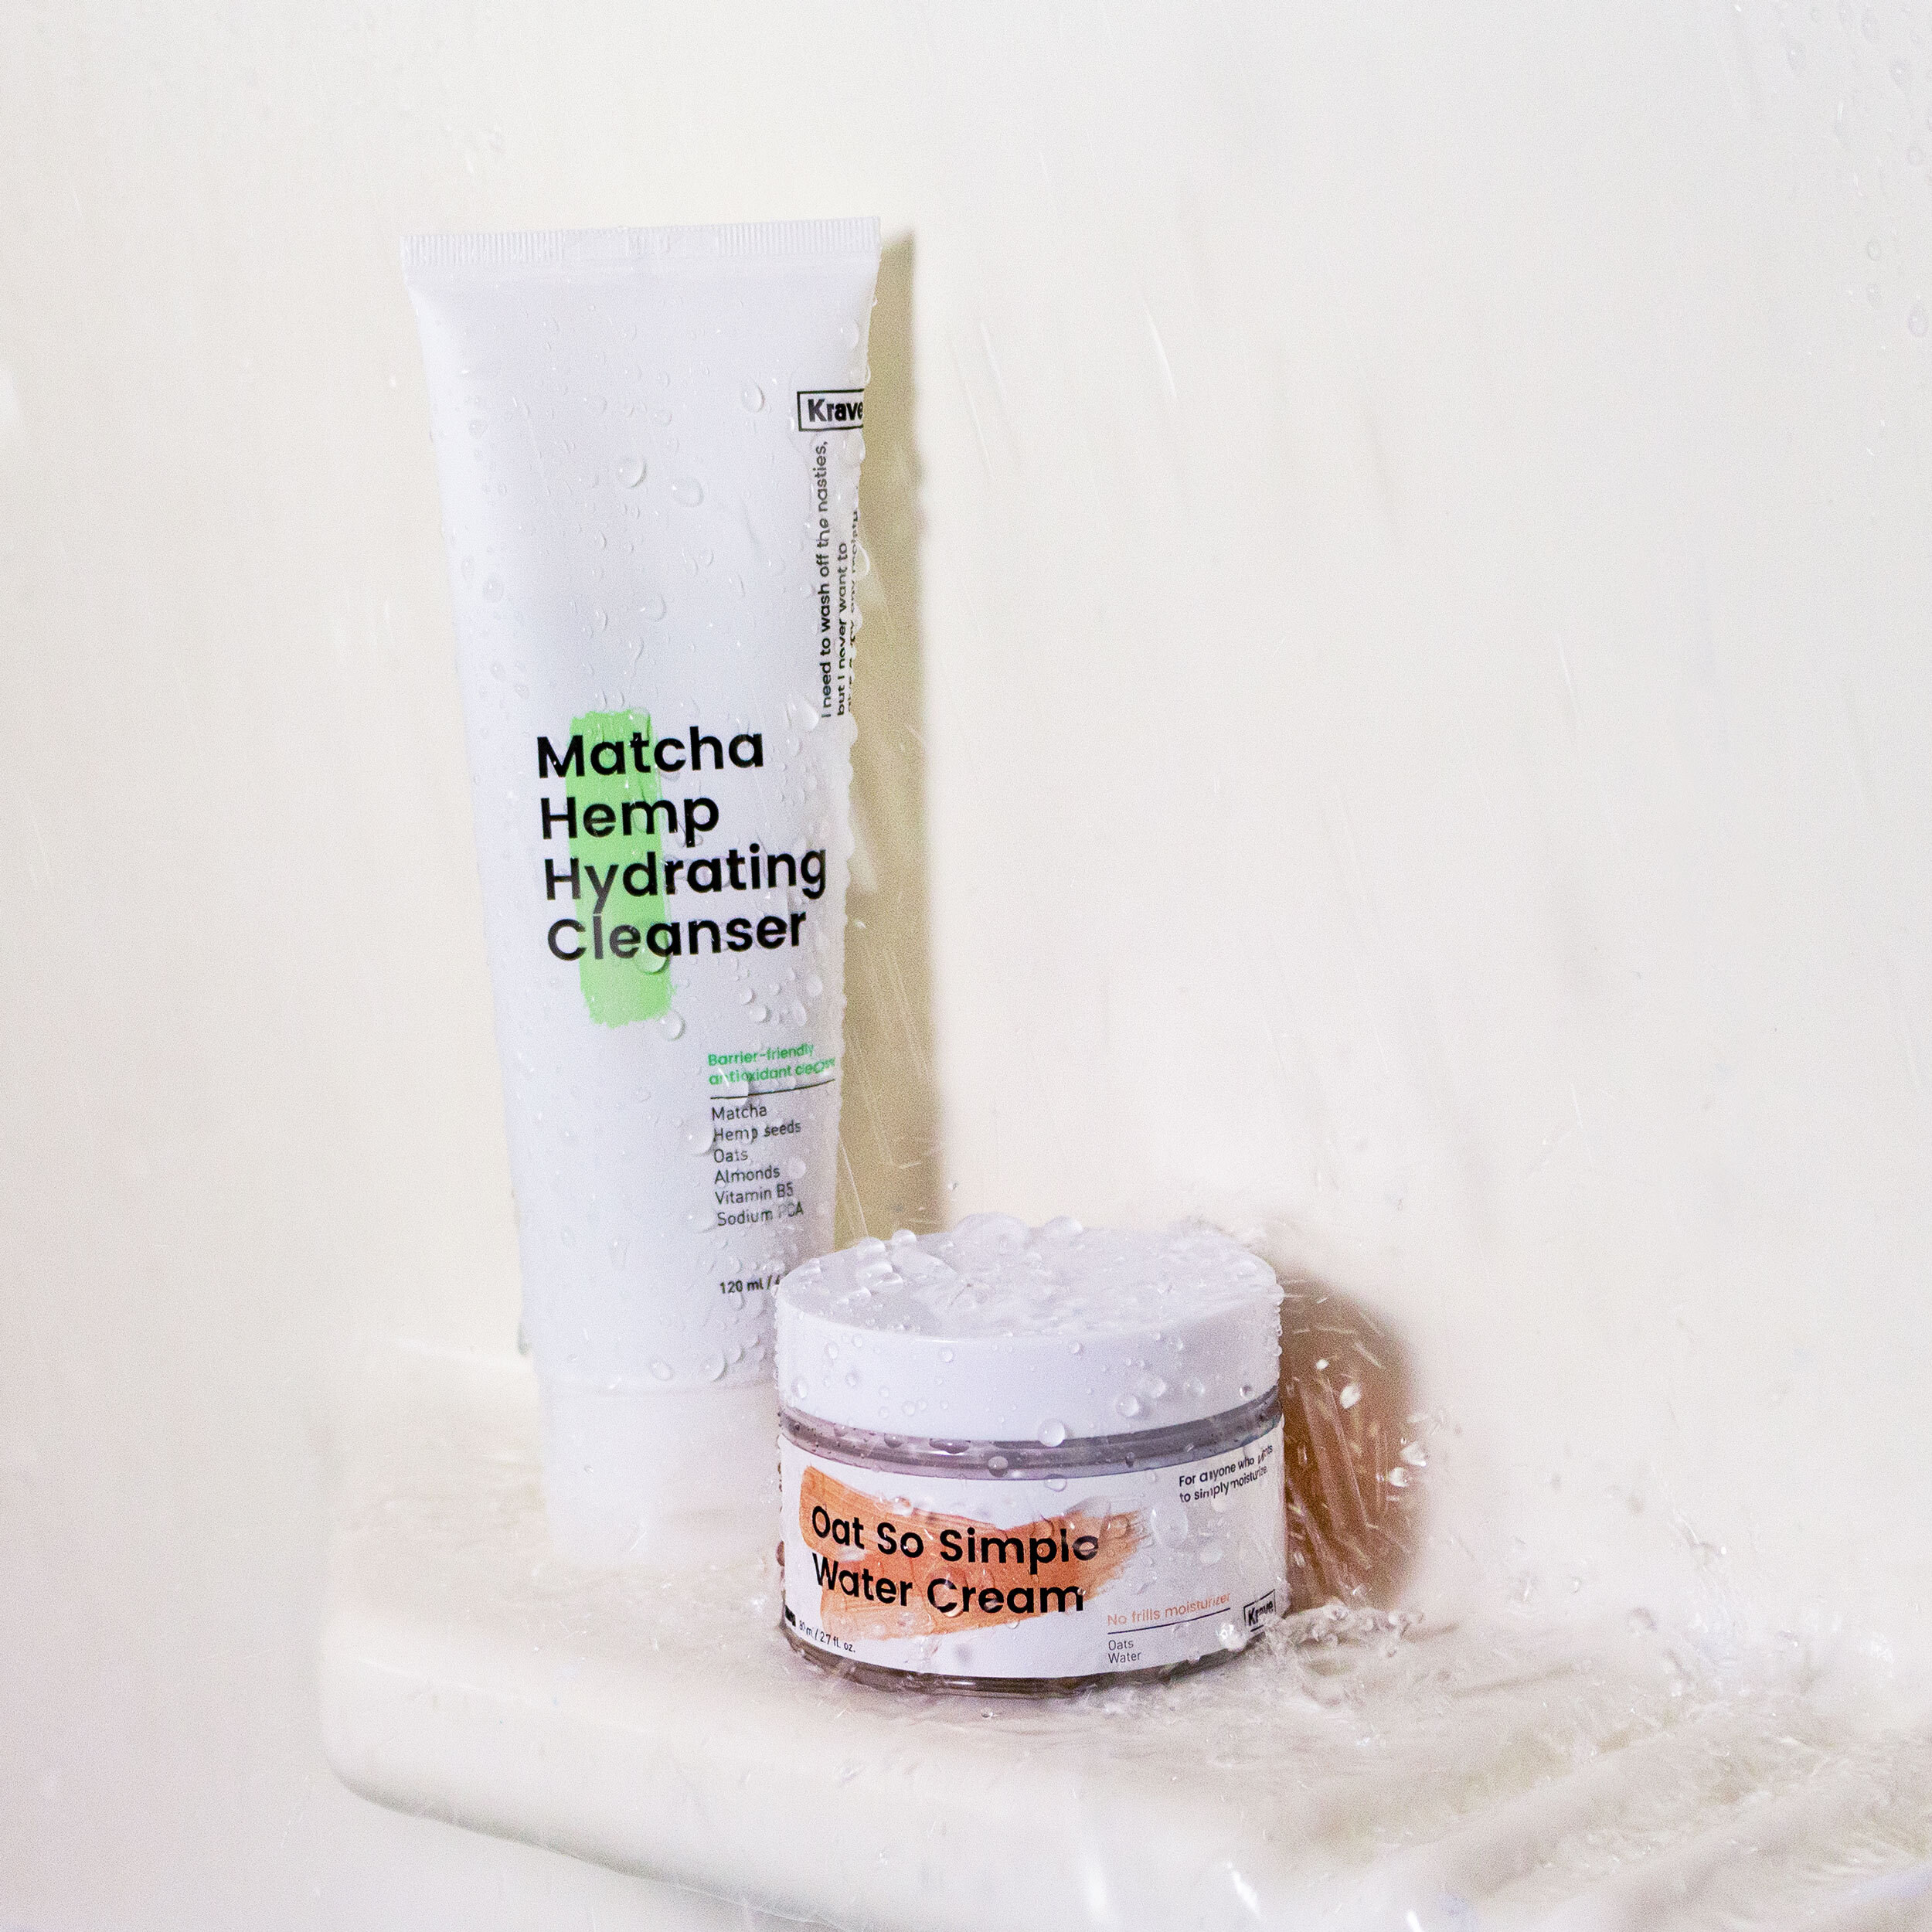 The tube of cleanser and jar of cream